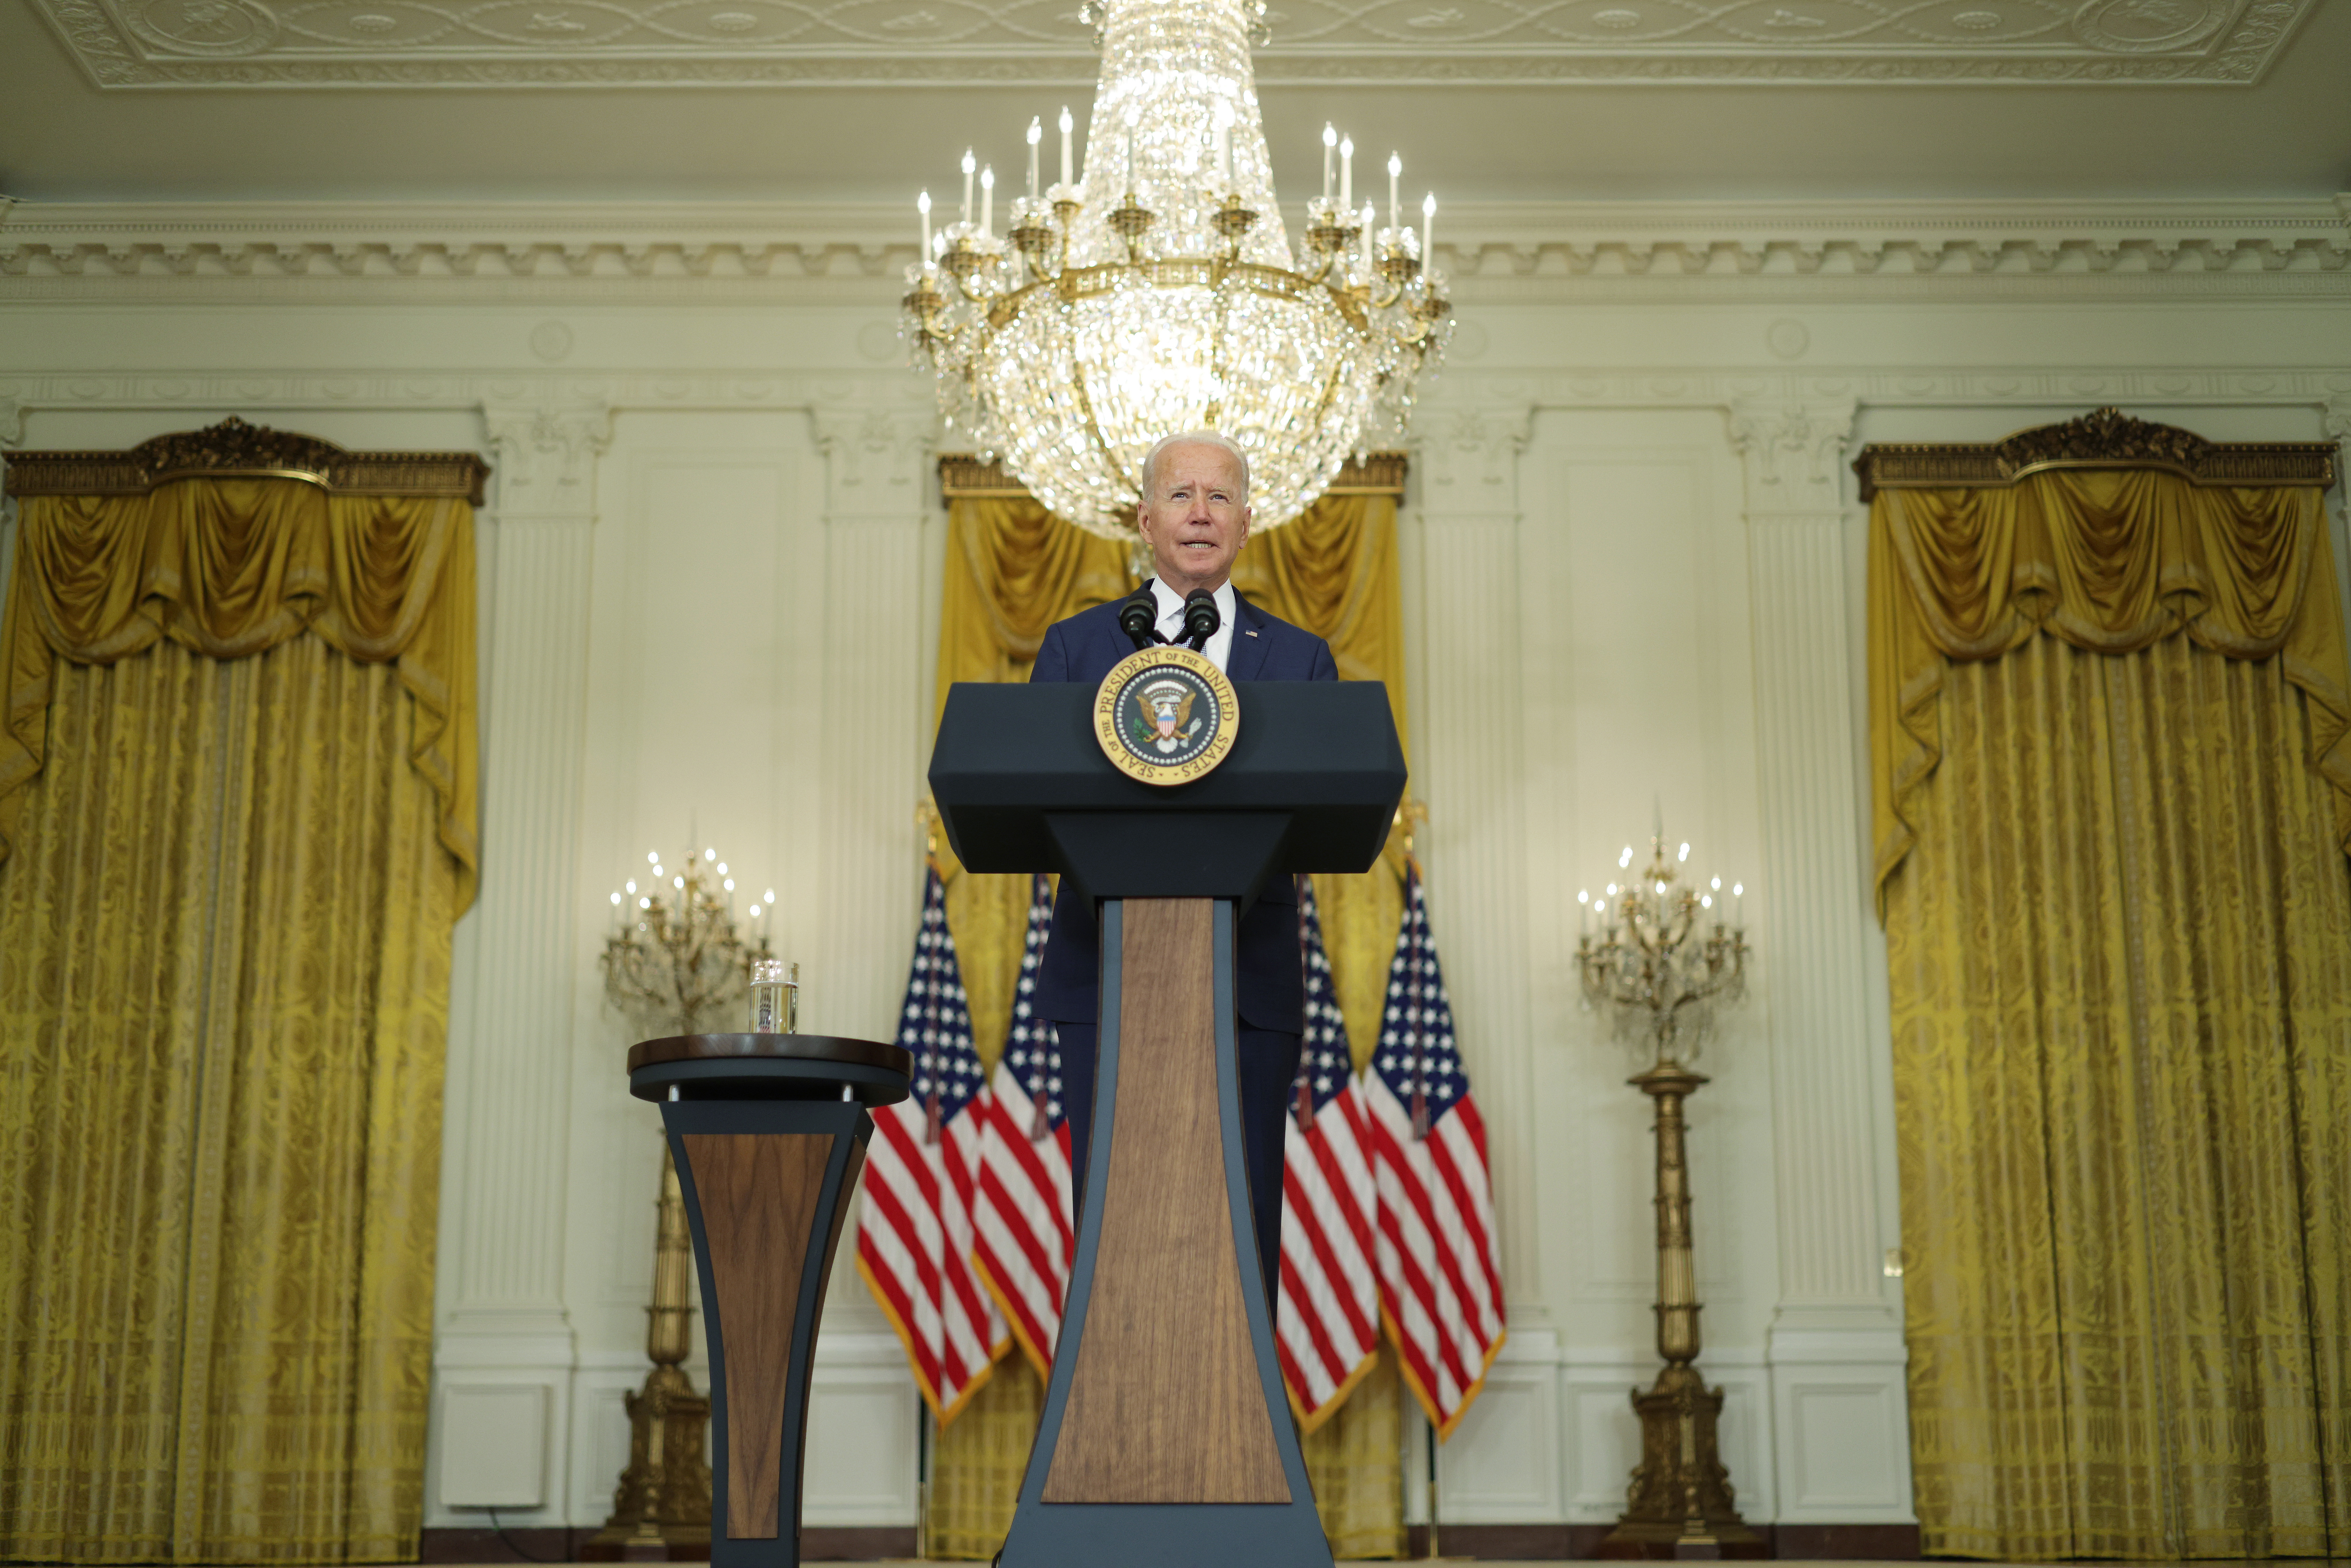 President Joe Biden delivers remarks on drug prices at the White House on Aug. 12. (Alex Wong/Getty Images)